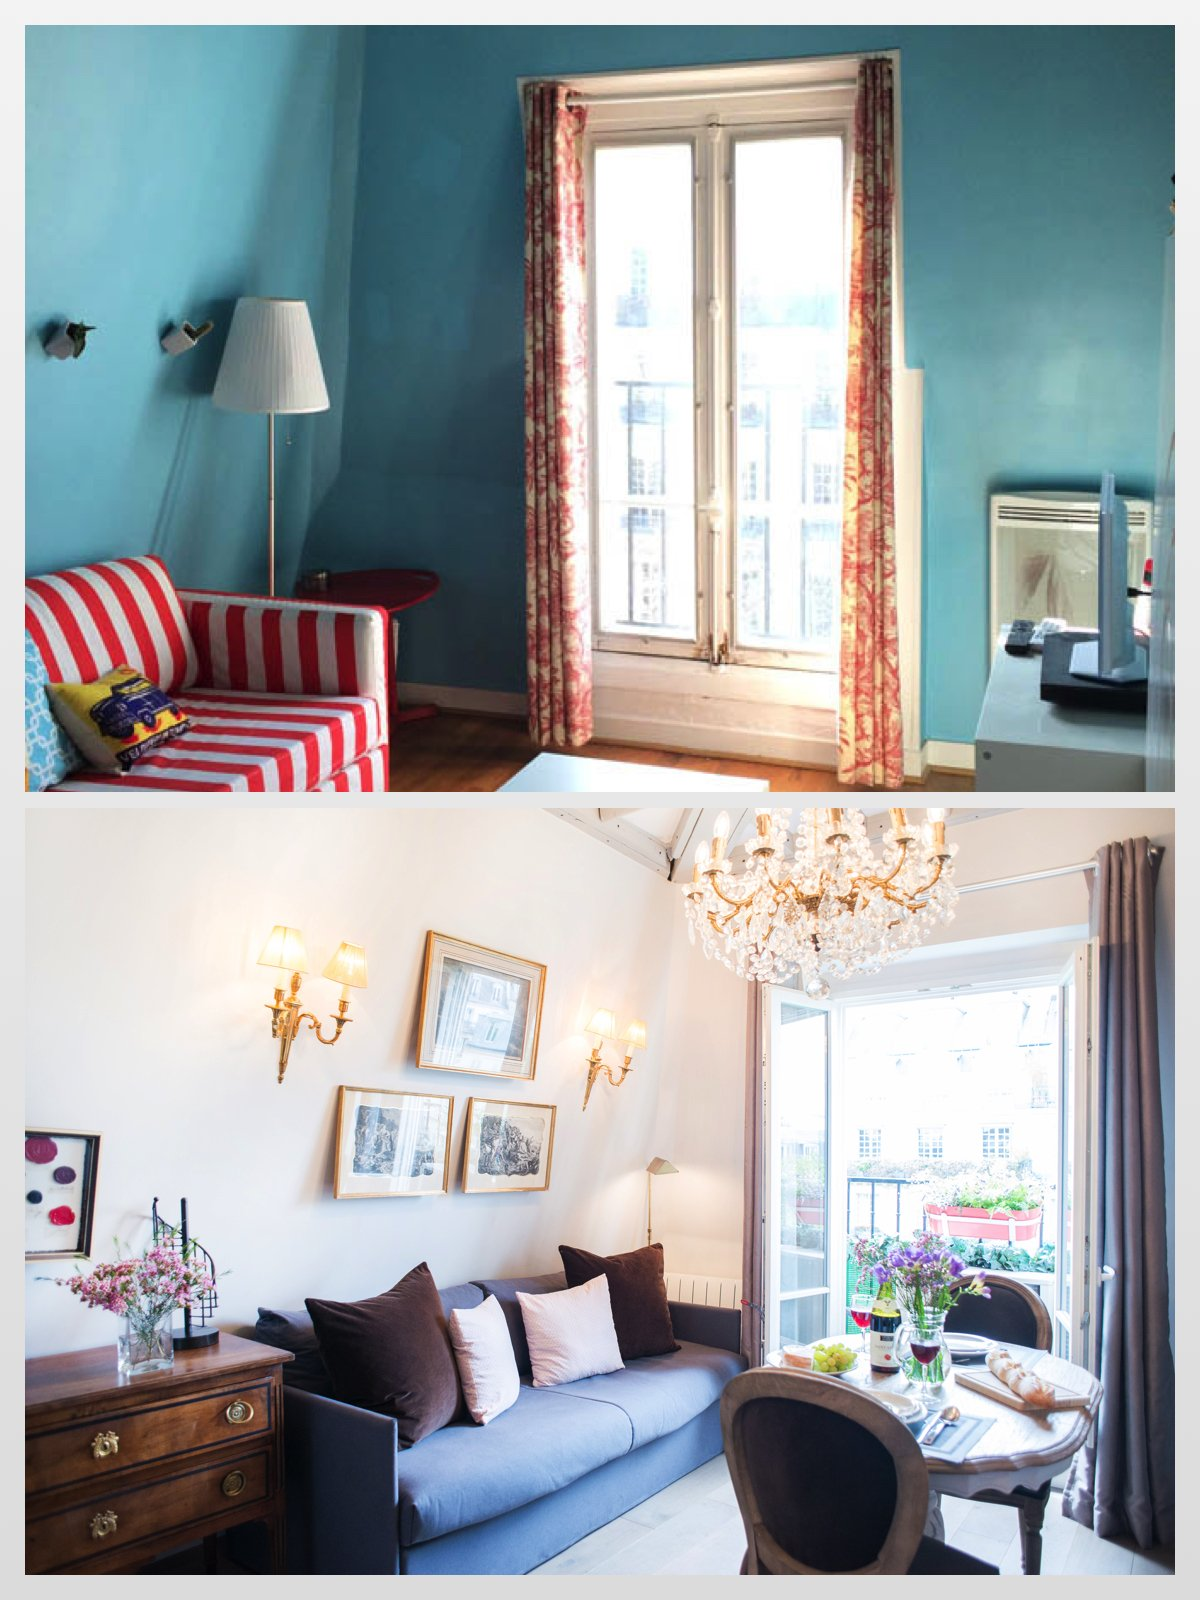 Renovating a Paris Apartment by Paris Perfect